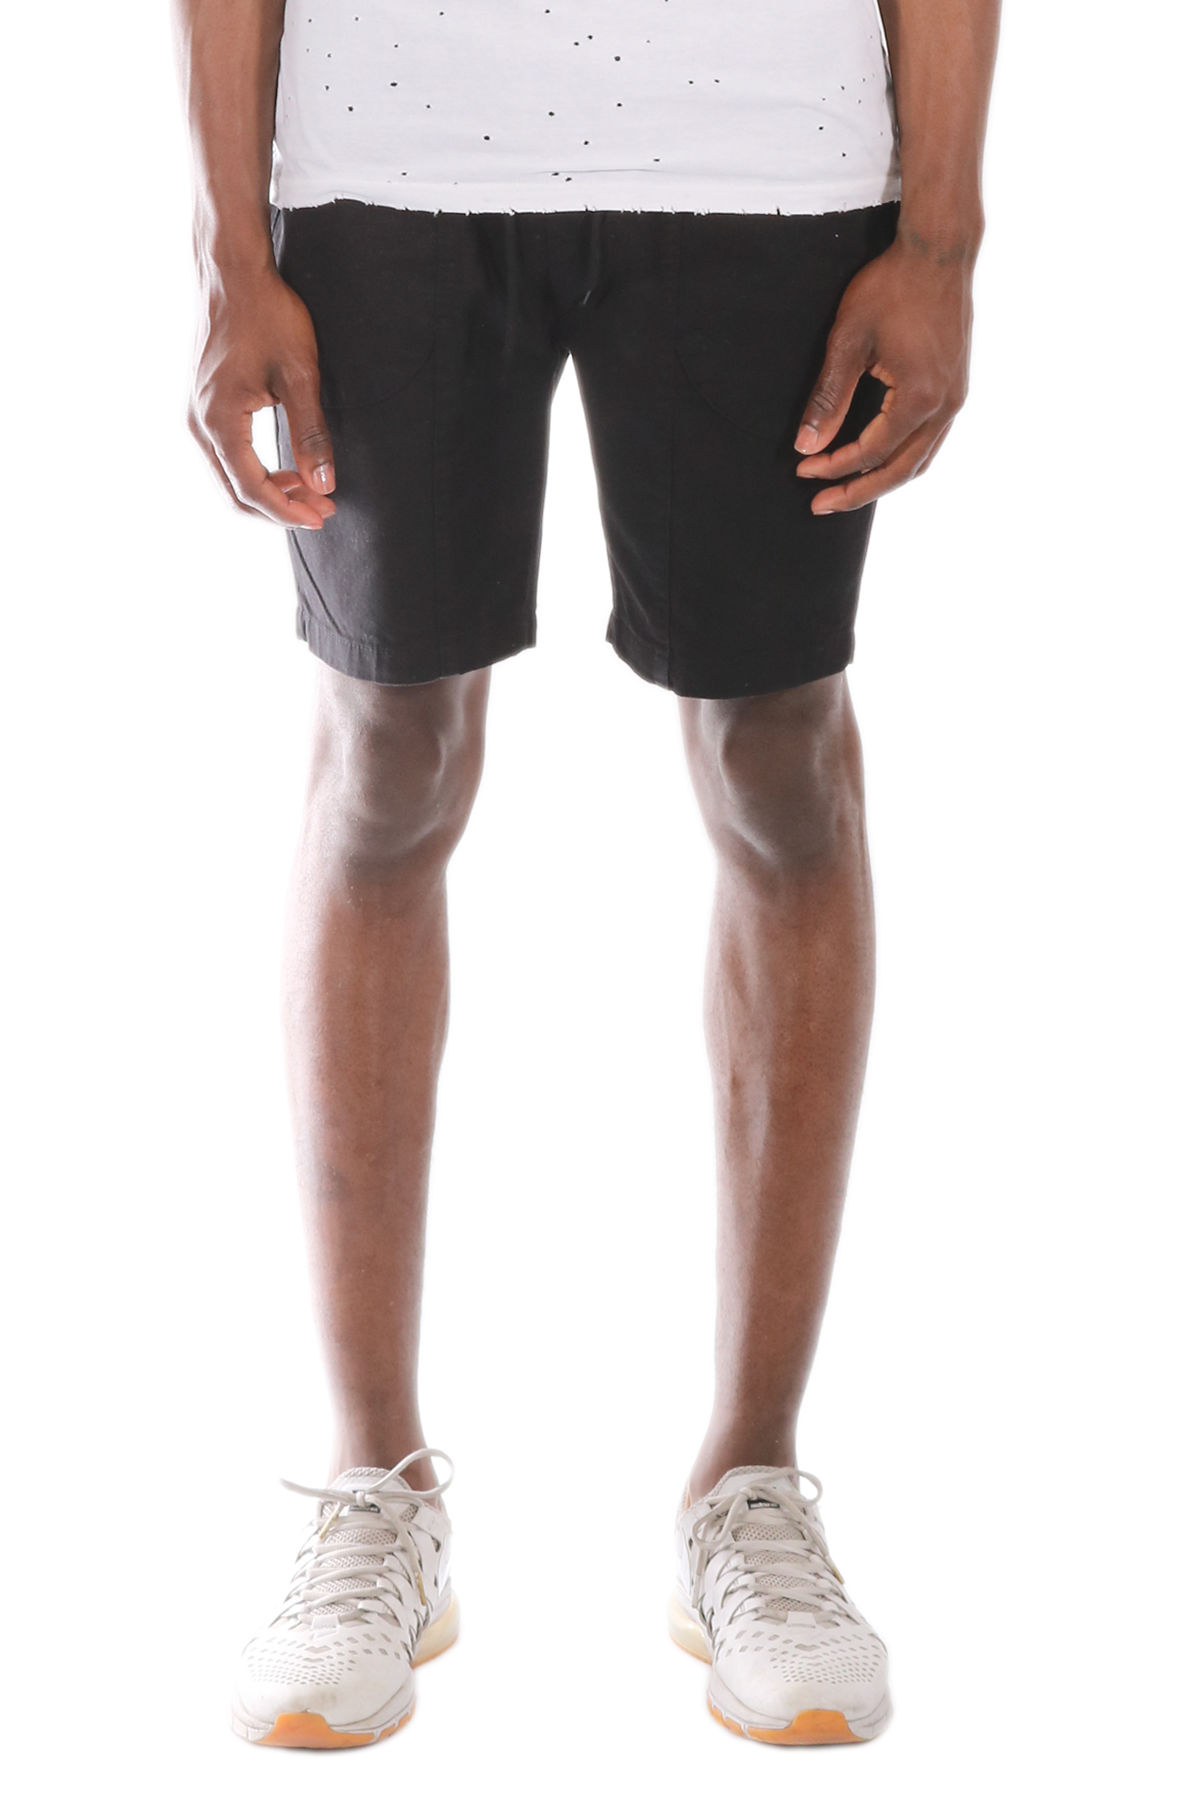 Image of The Allston Cotton Twill Metal Zipper Trim Elastic Banded Shorts in Black